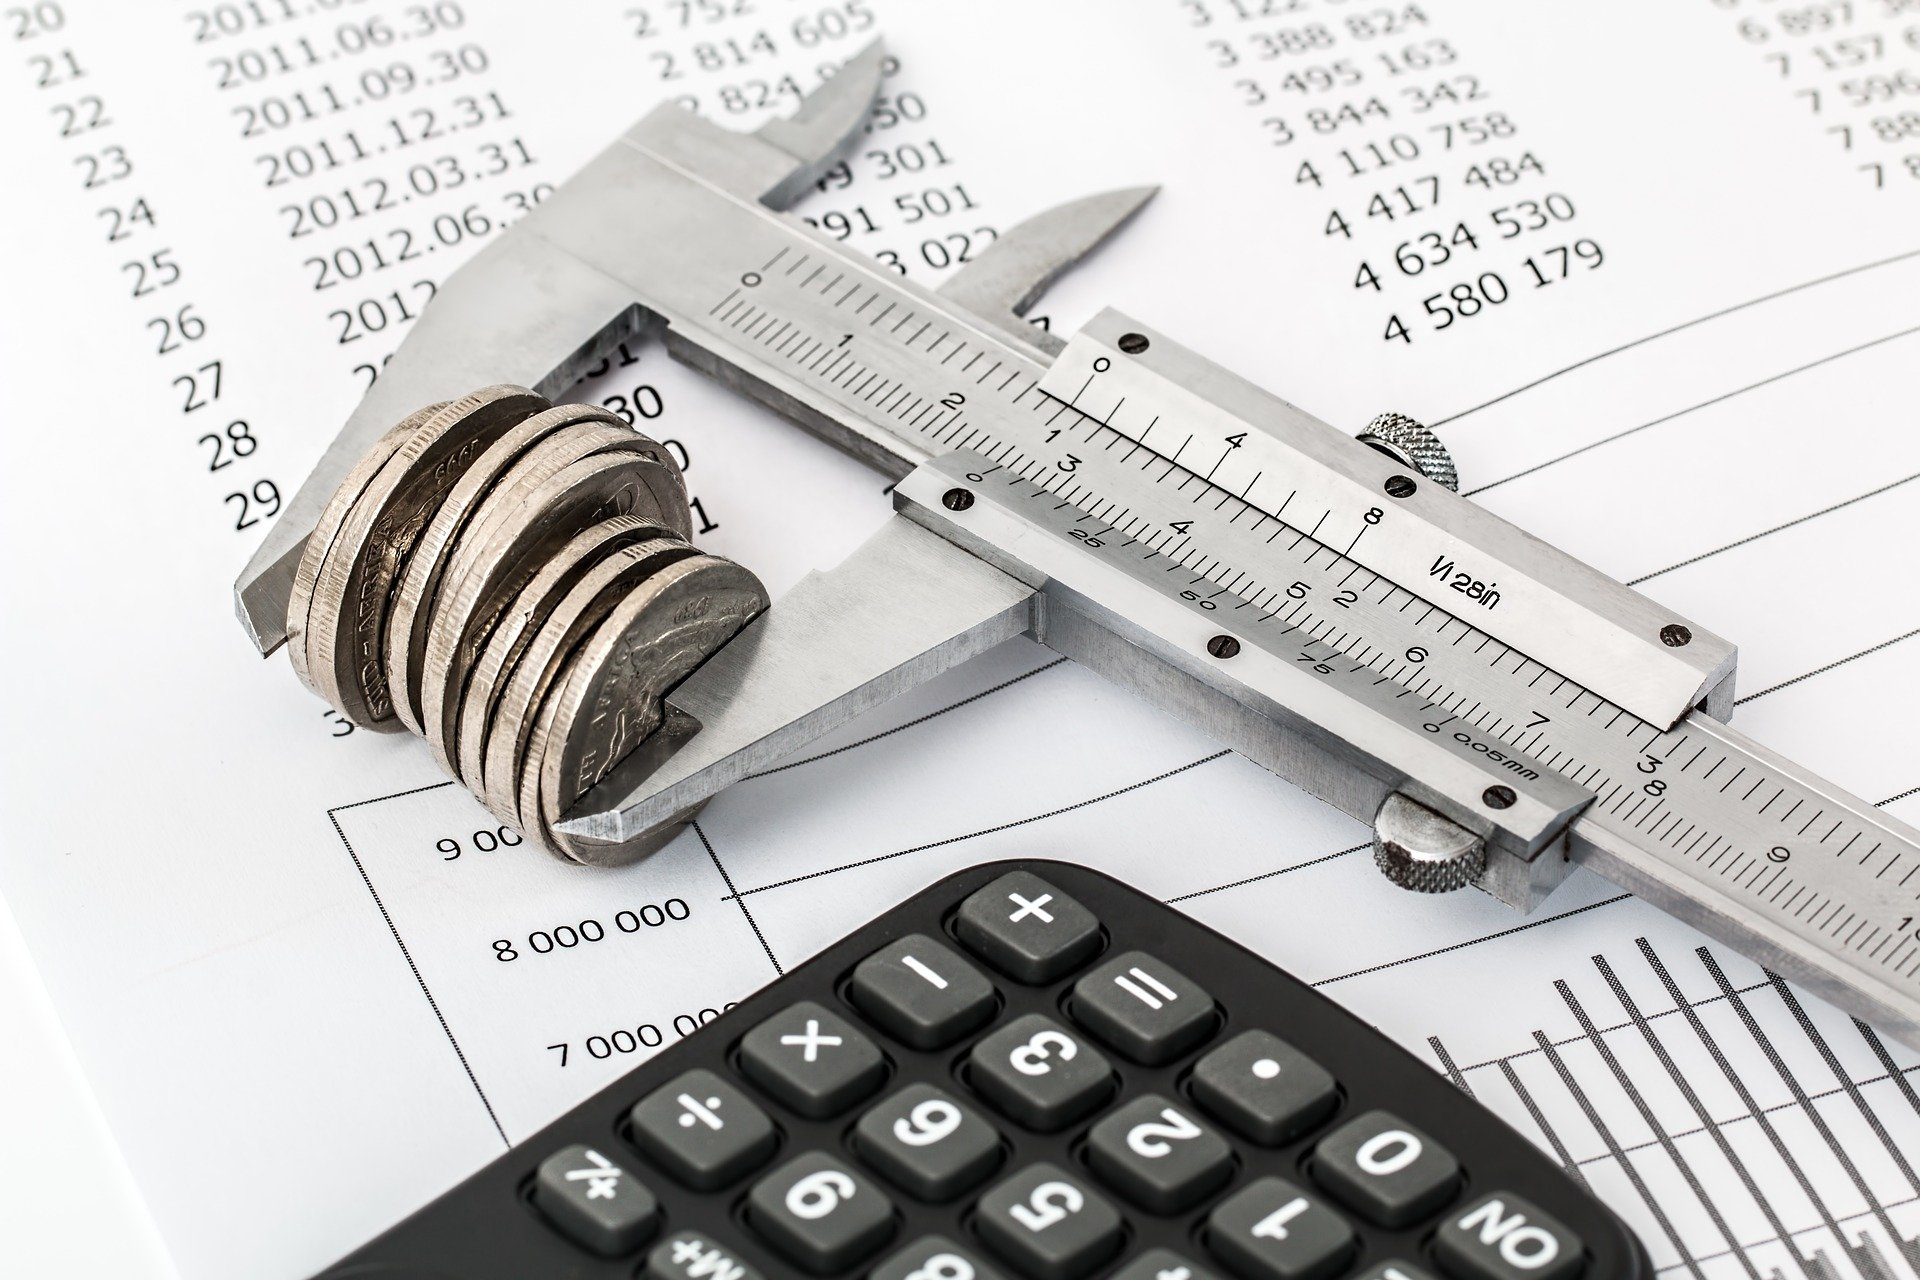 Measuring tool with coins, numbered document and a calculator